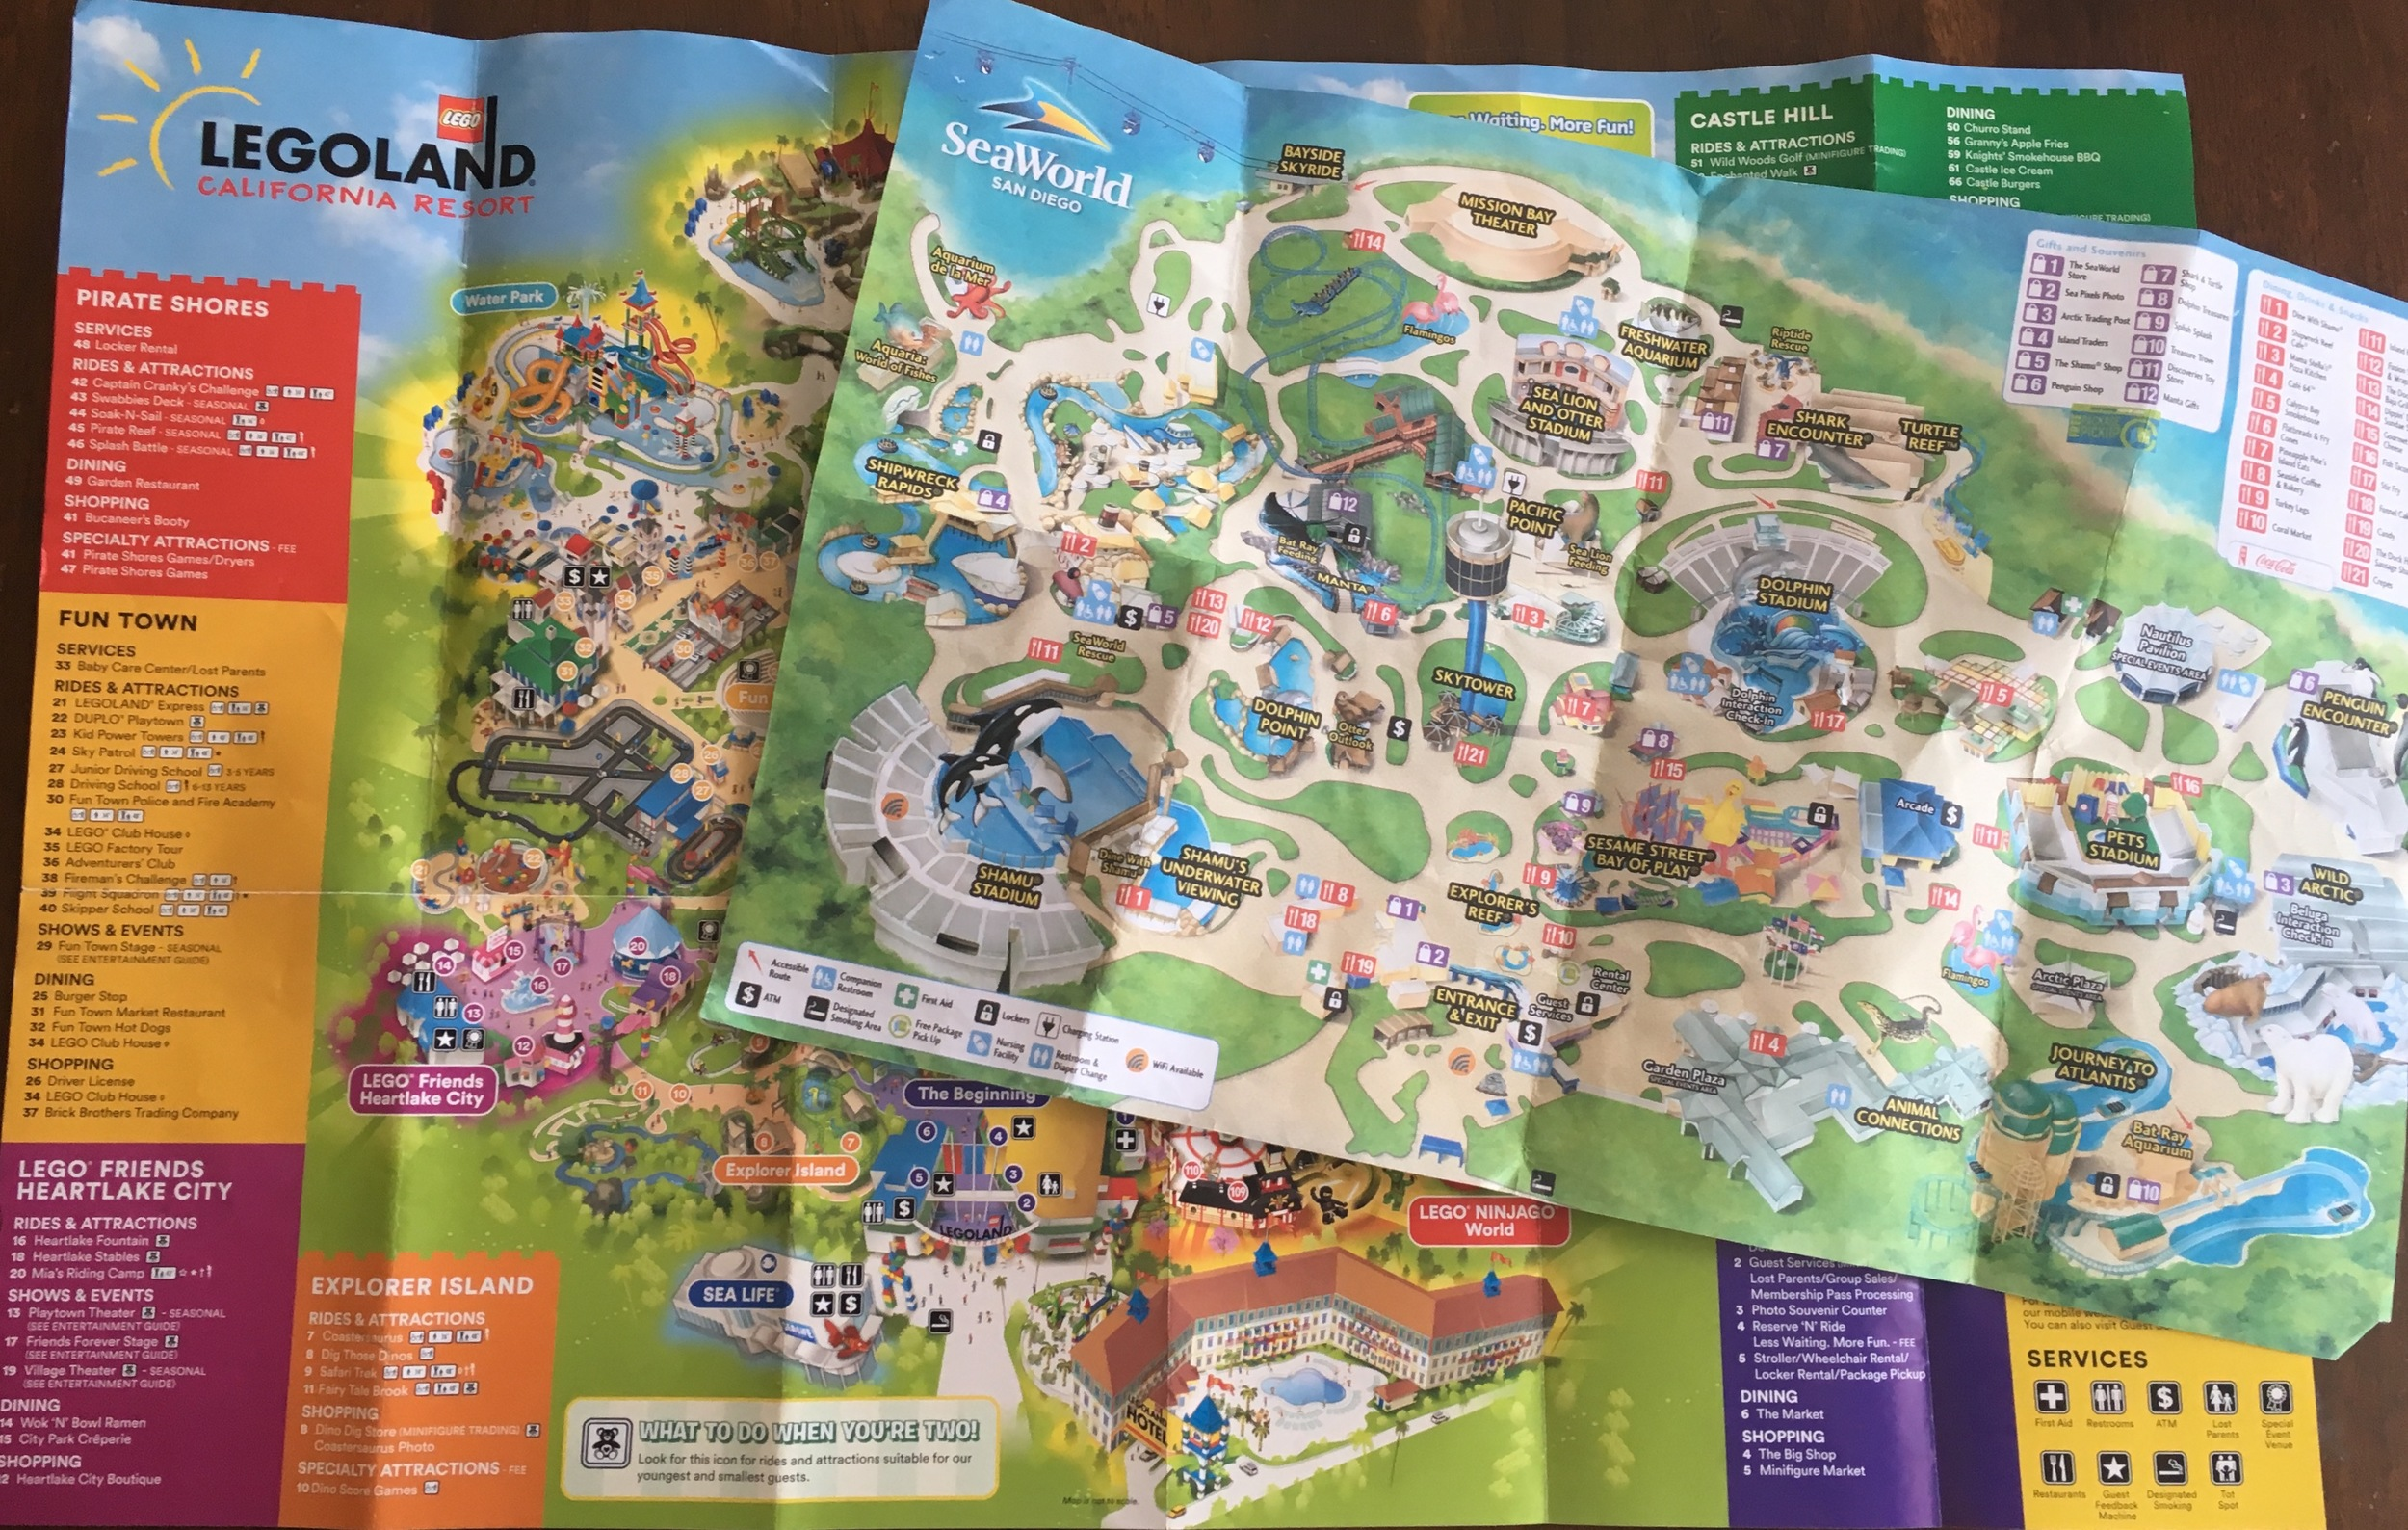 Park maps from my trip to Legoland and Sea World